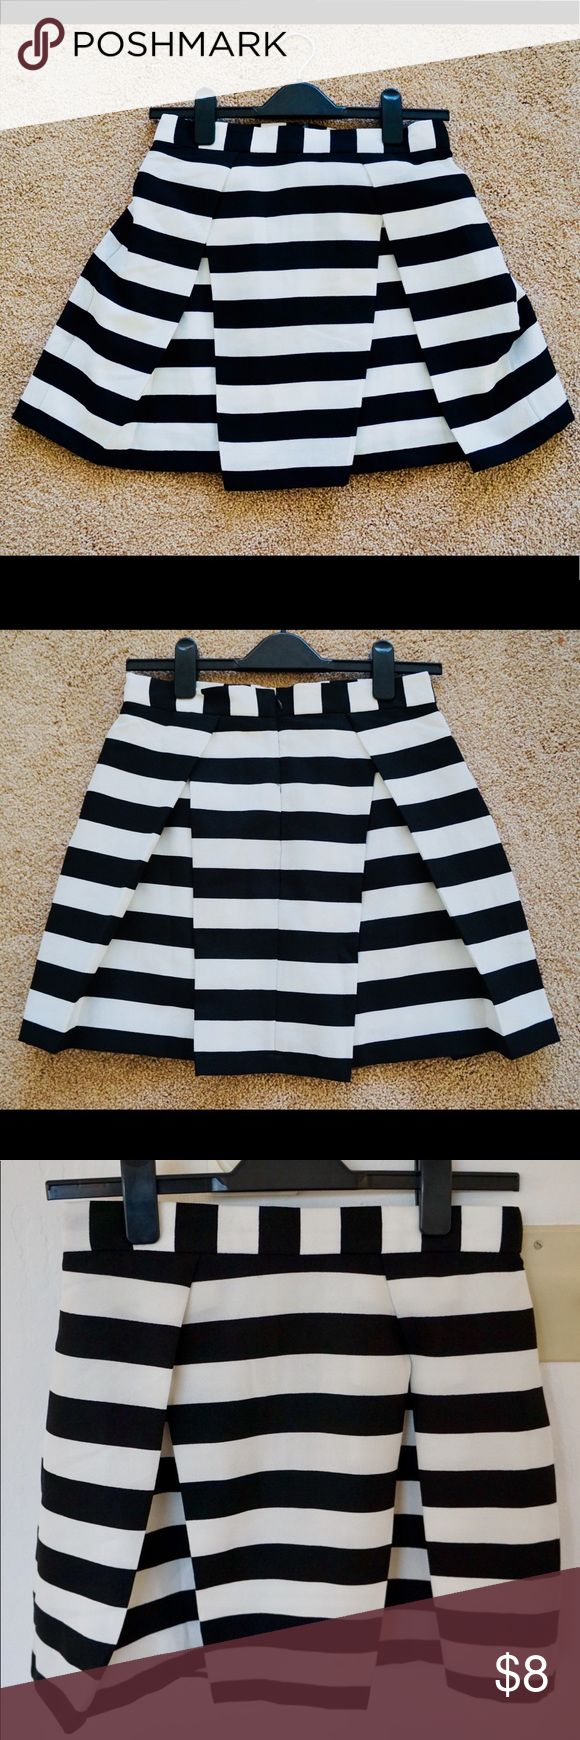 Black and white striped skirt Forever 21 black and white striped mini skirt, silky textured material with silk inner lining! Barely worn, no stains and no damage! Forever 21 Skirts Mini